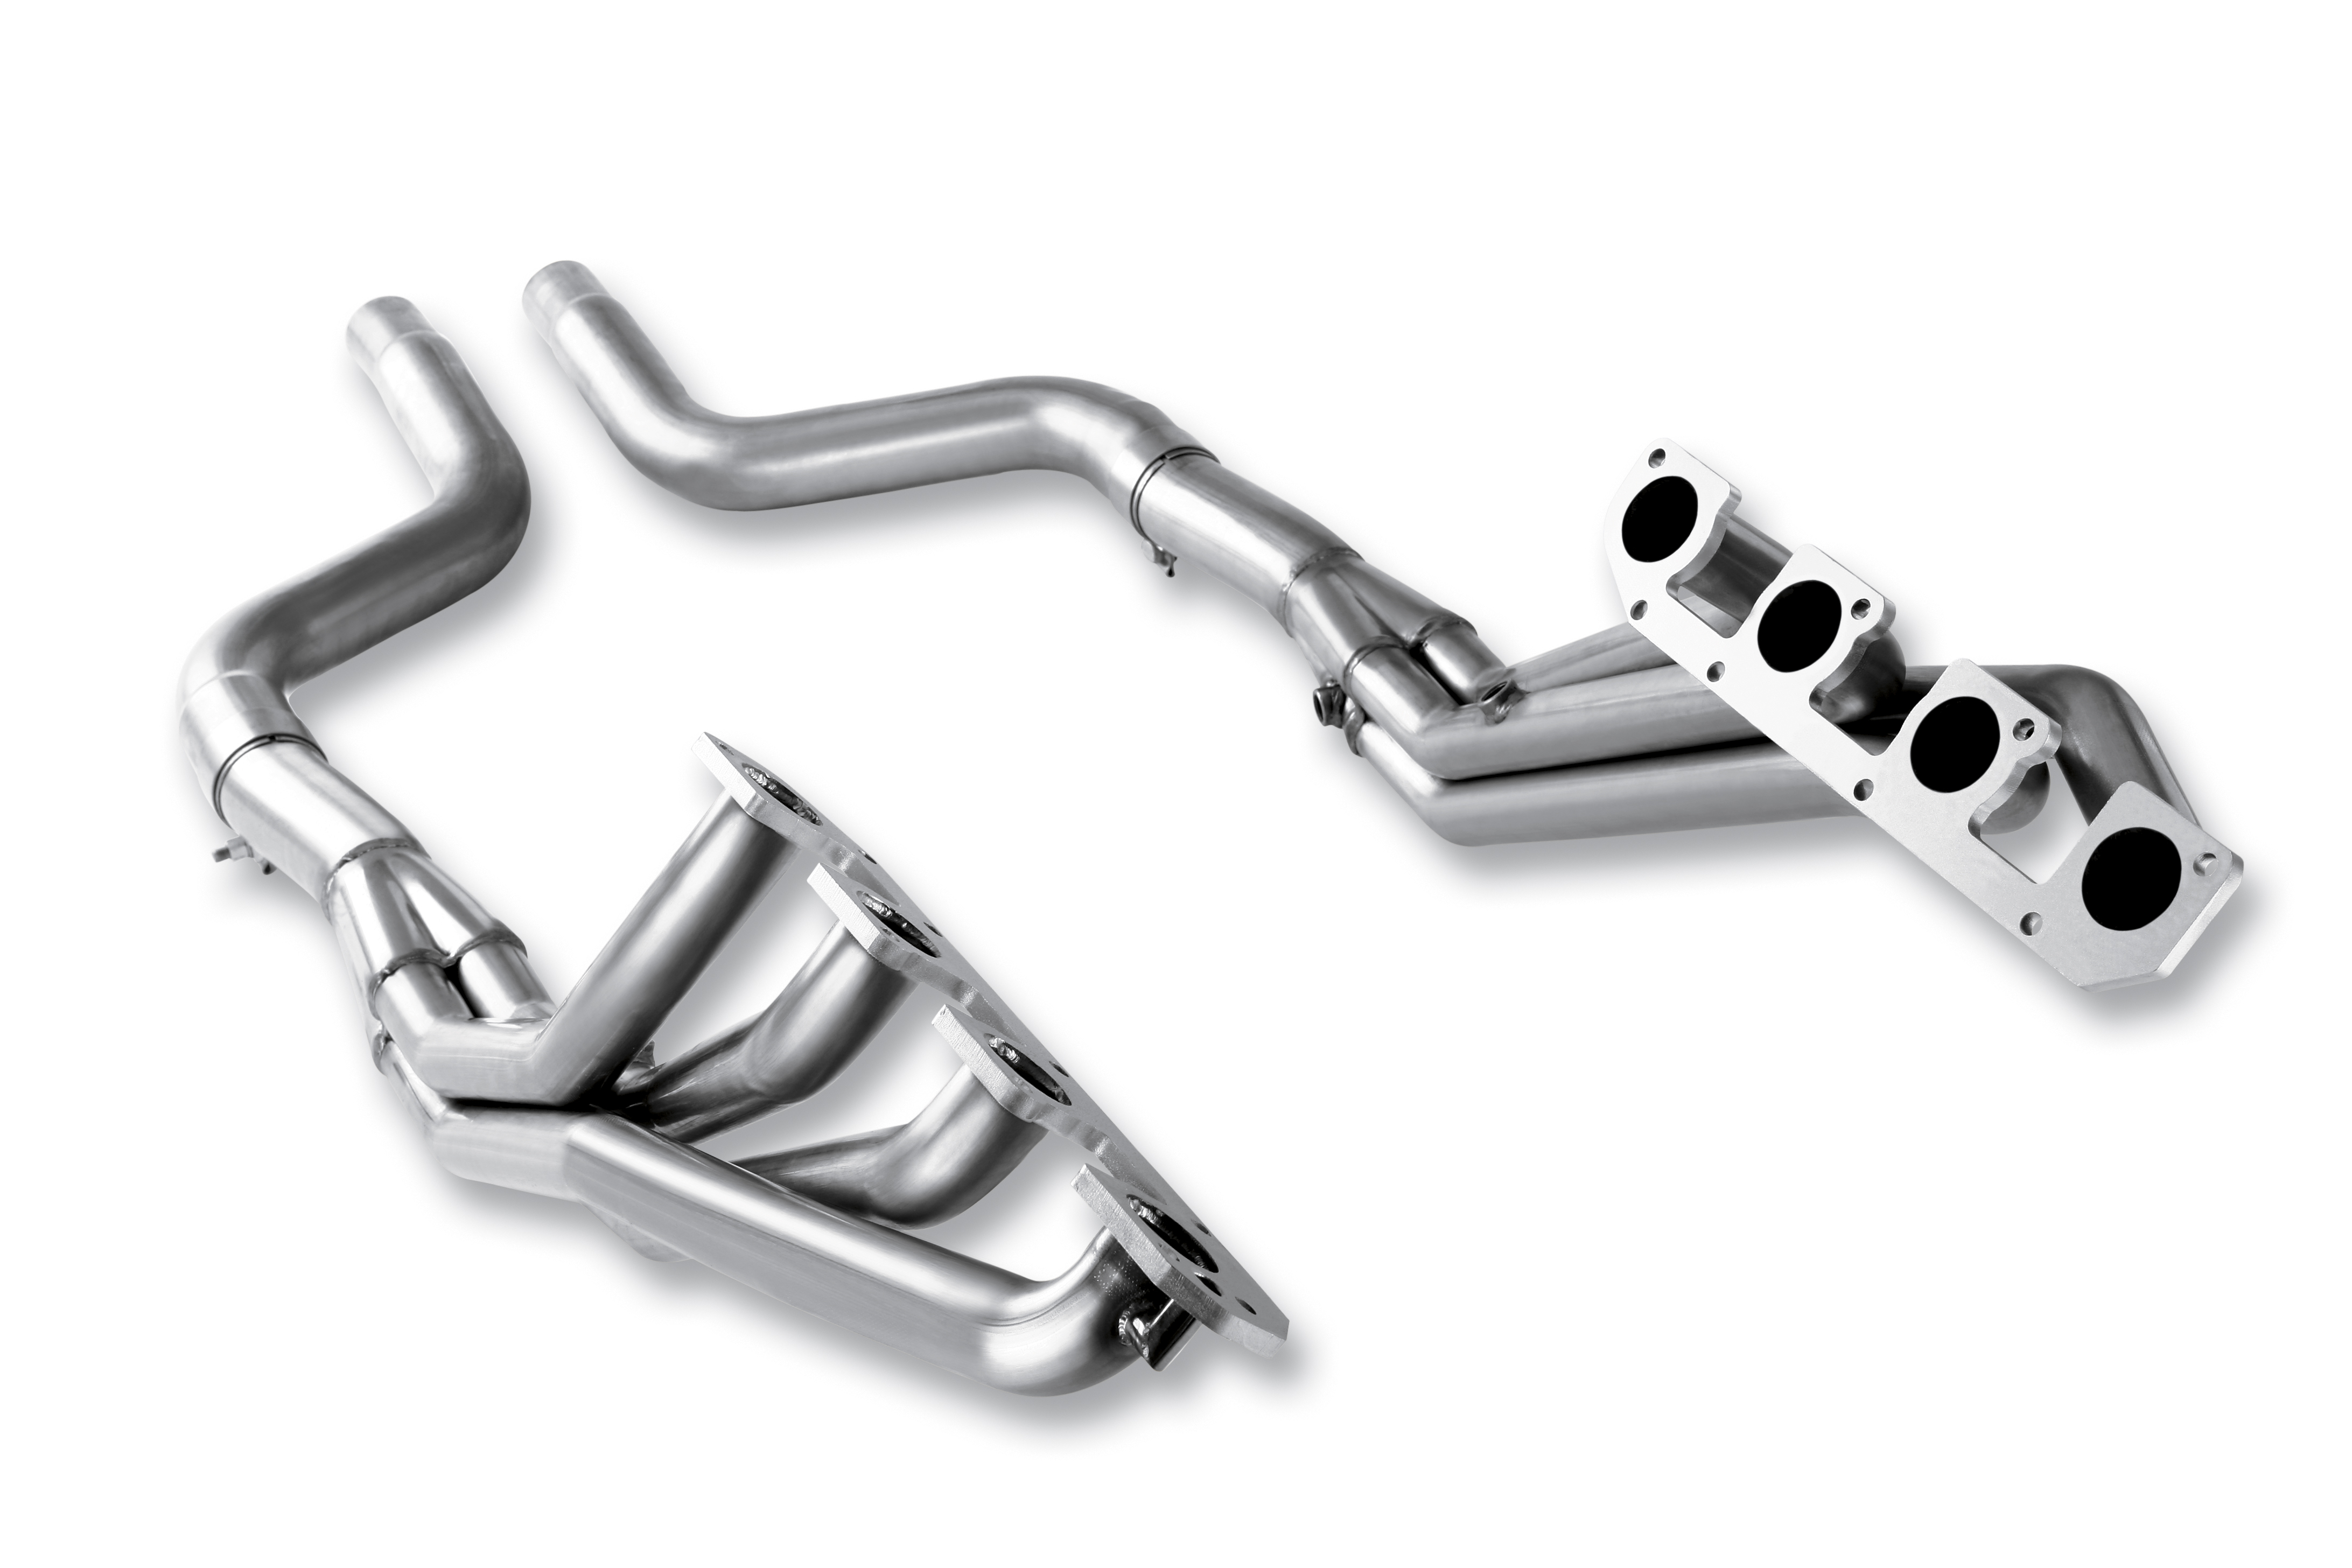 Dodge Charger Rt 5.7l V8 2005-2008 Borla Long Tube Exhaust Headers (offroad Only)